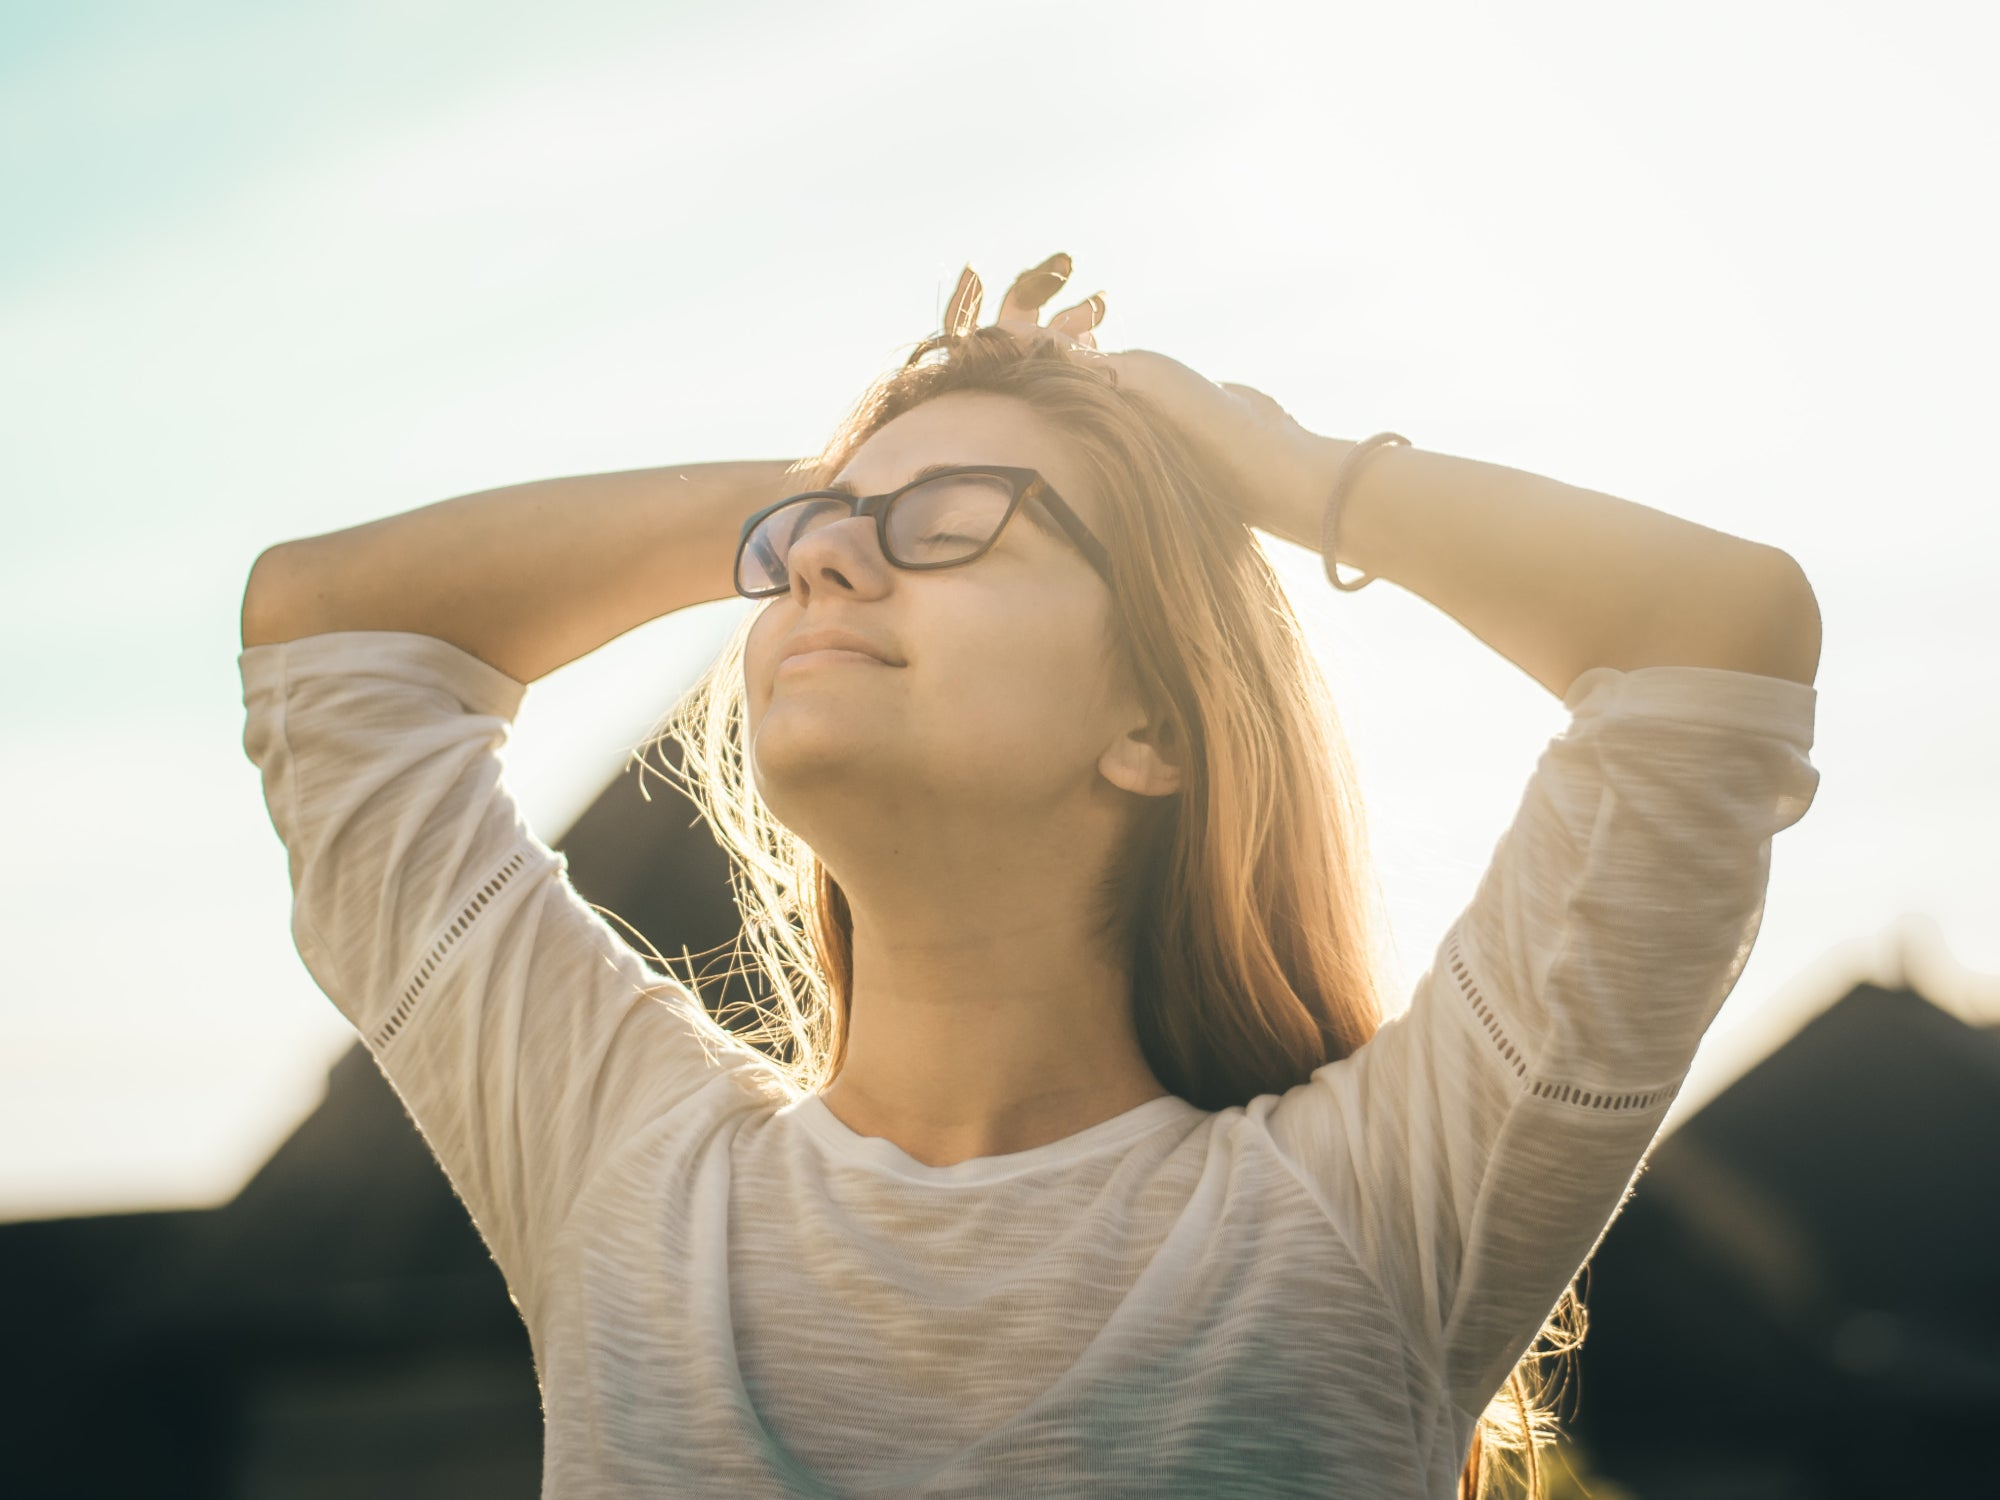 a woman standing calm and happy in the sunlight